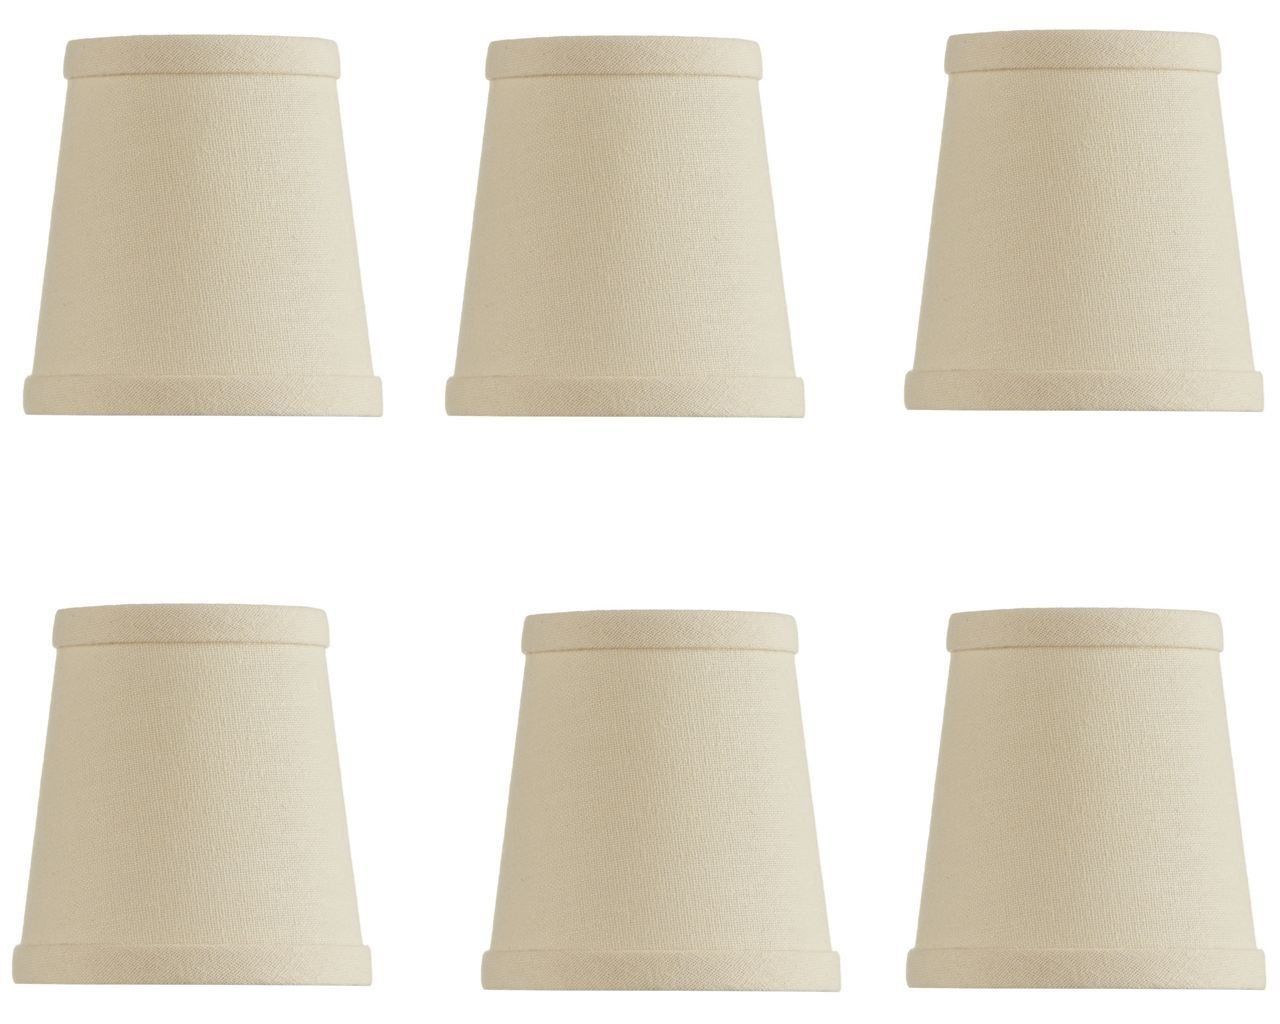 Mini Chandelier Shades Clip On Small Lamp Shade Set Of Six Beige Linen Want Additional Info Click O Chandelier Lamp Shades Small Lamp Shades Chandelier Lamp 4 inch lamp shades